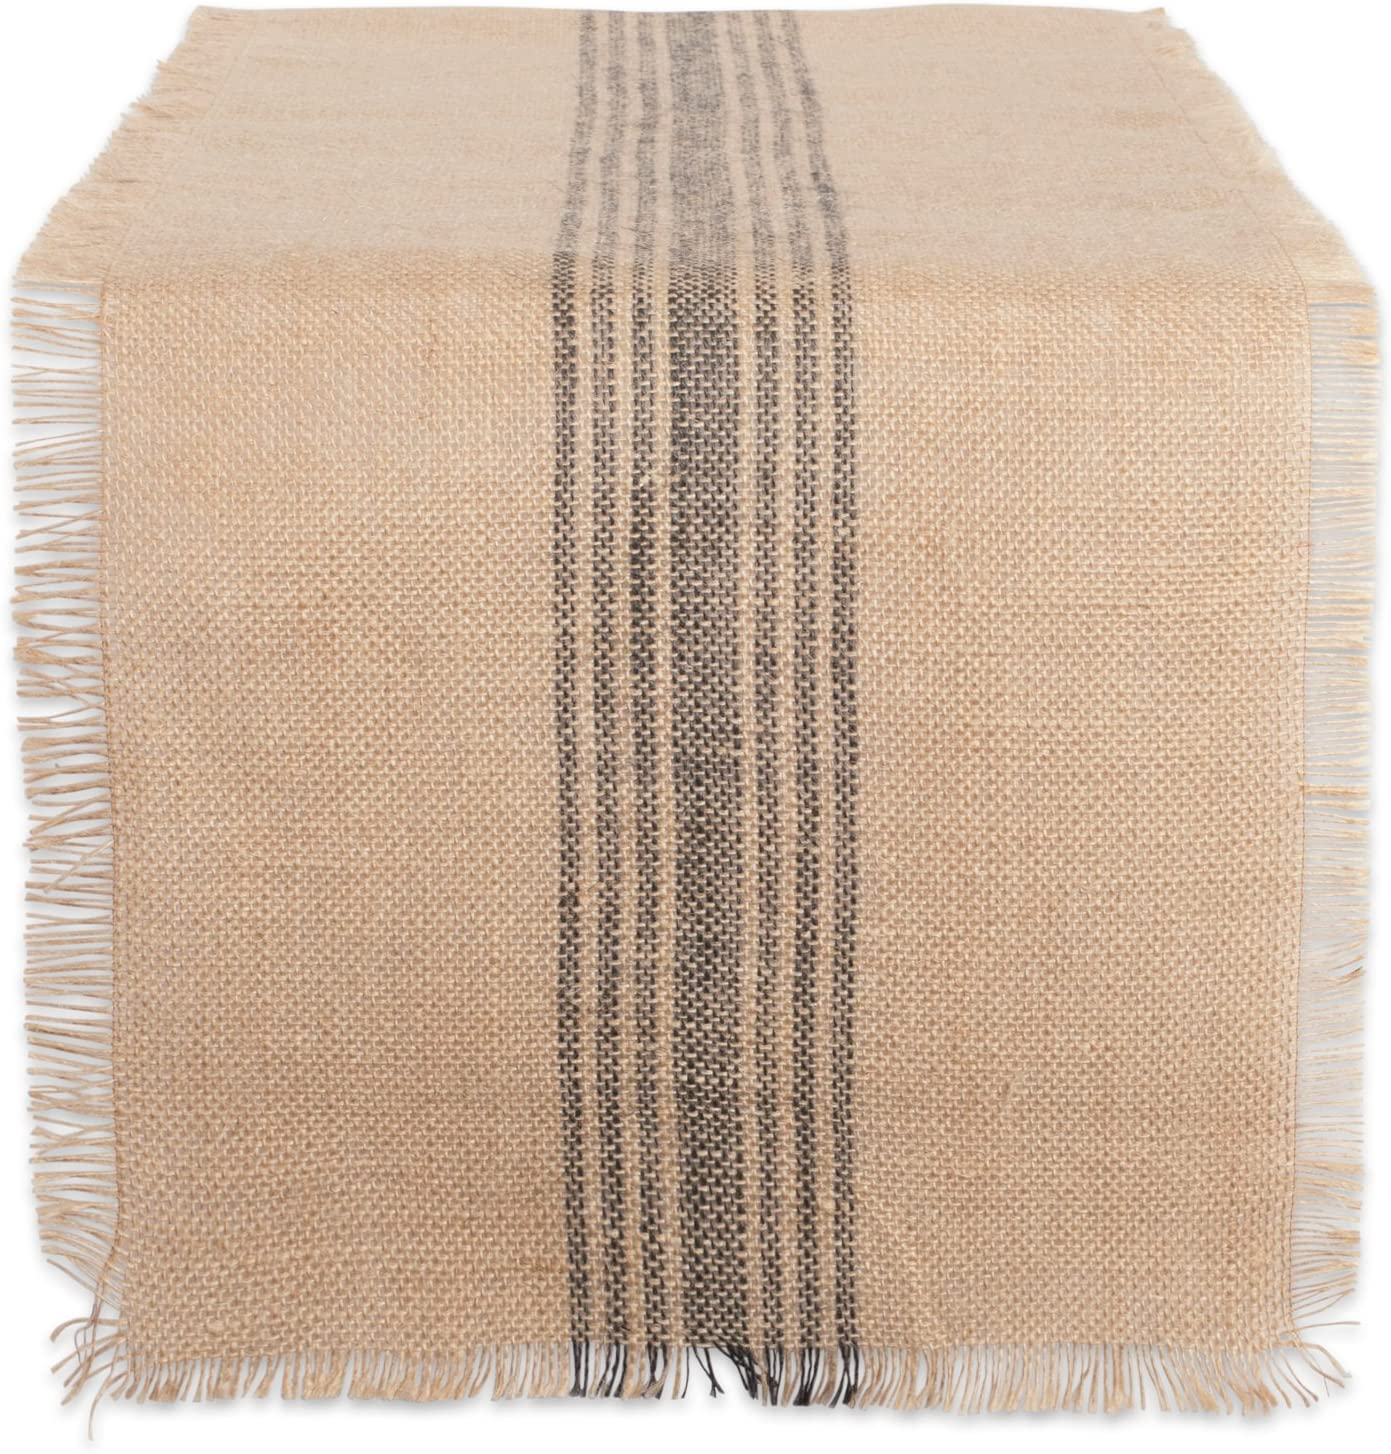 DII CAMZ38416 Mineral Middle Burlap Table Runner, 14 x 108, Center Stripe Gray